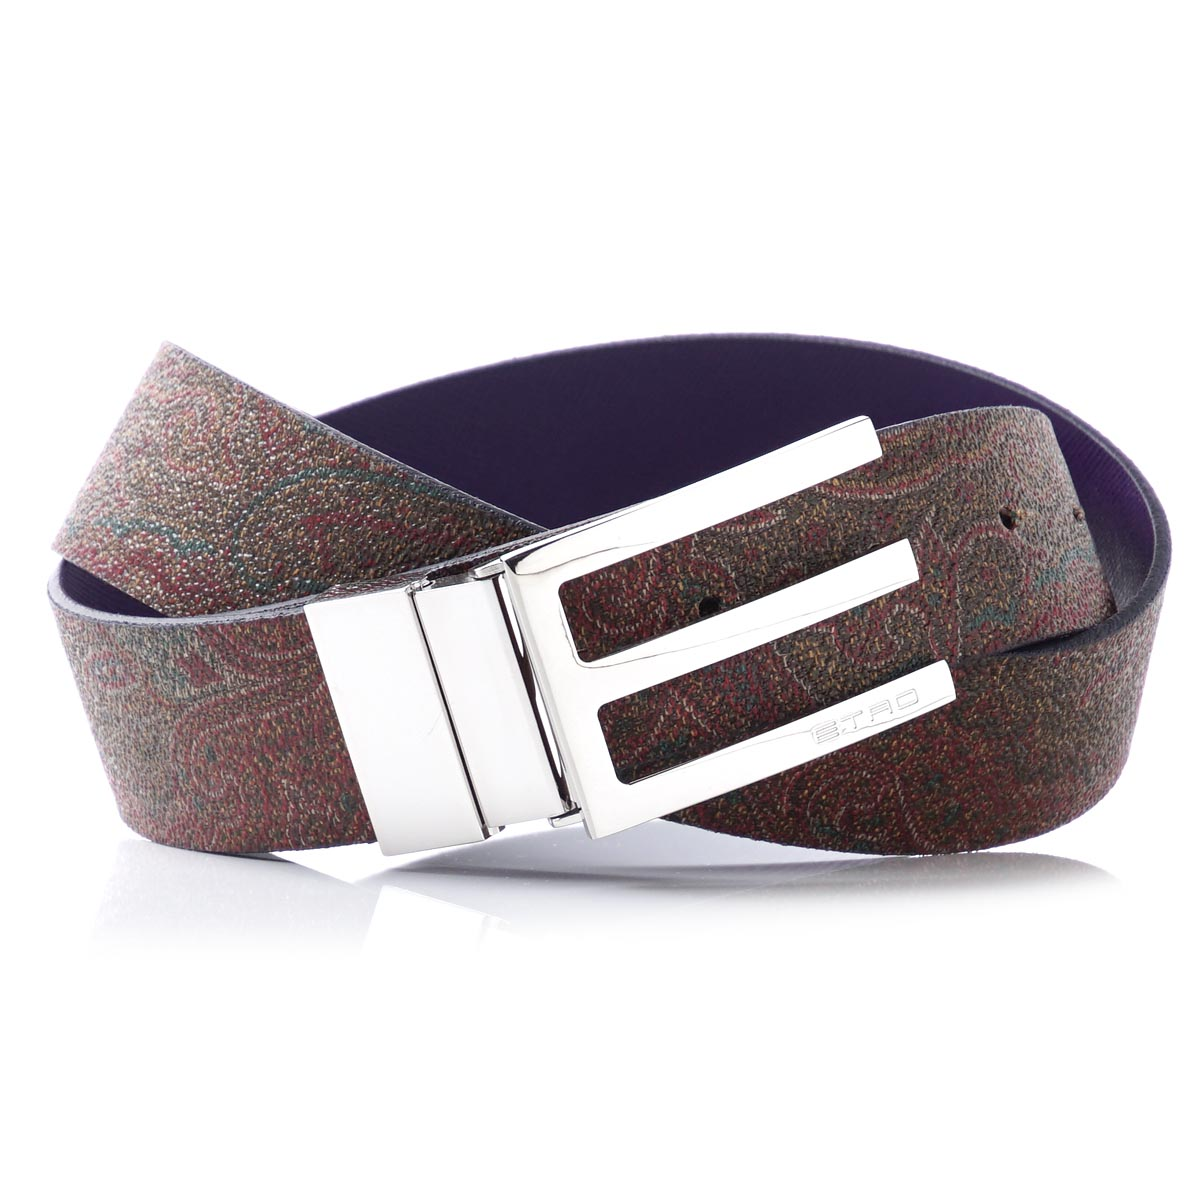 エトロ ETRO reversible belt bar Gandhi X purple-red system 15482 8182 400 men